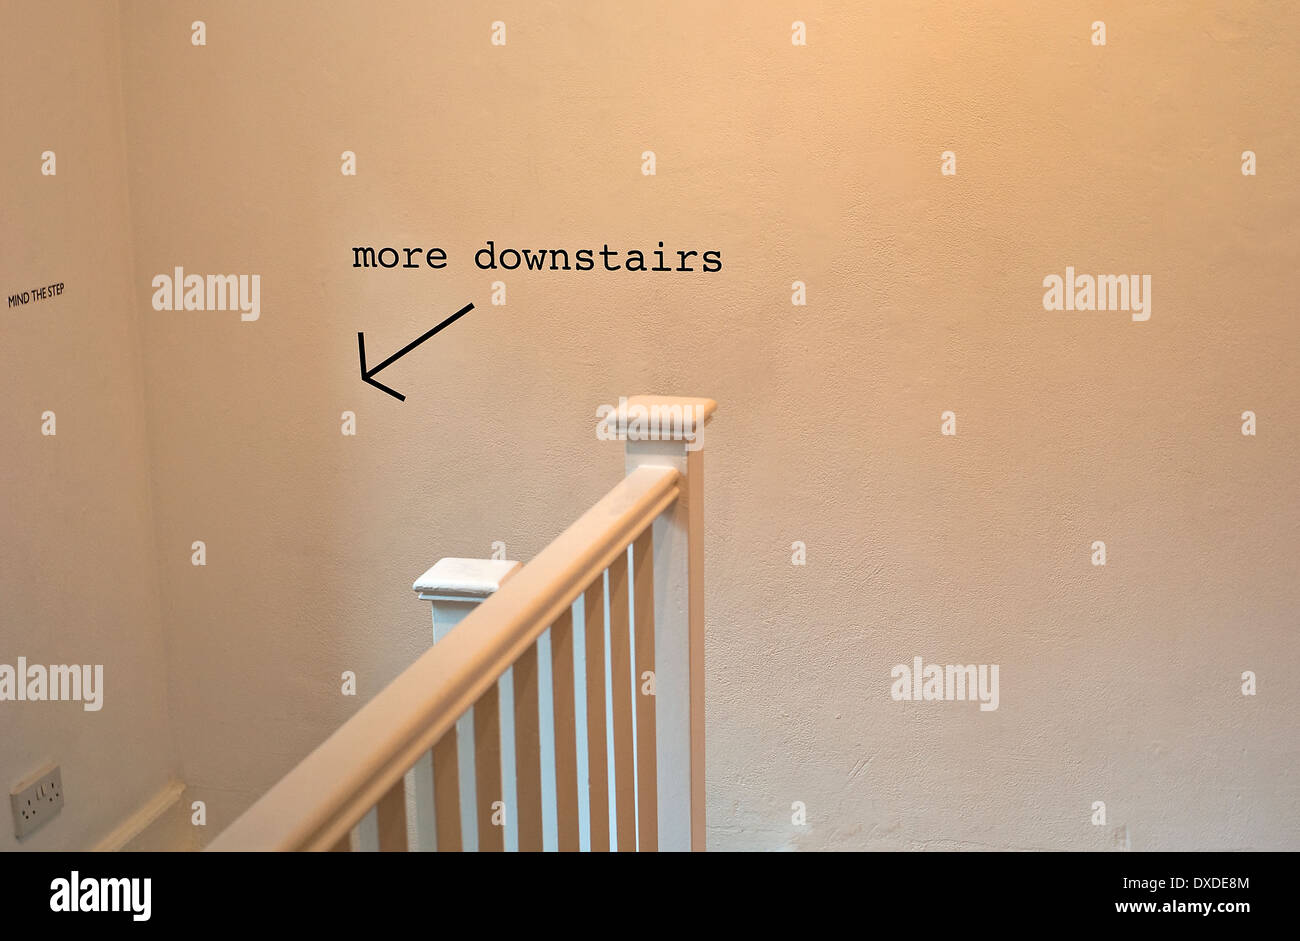 More downstairs sign with arrow - Stock Image